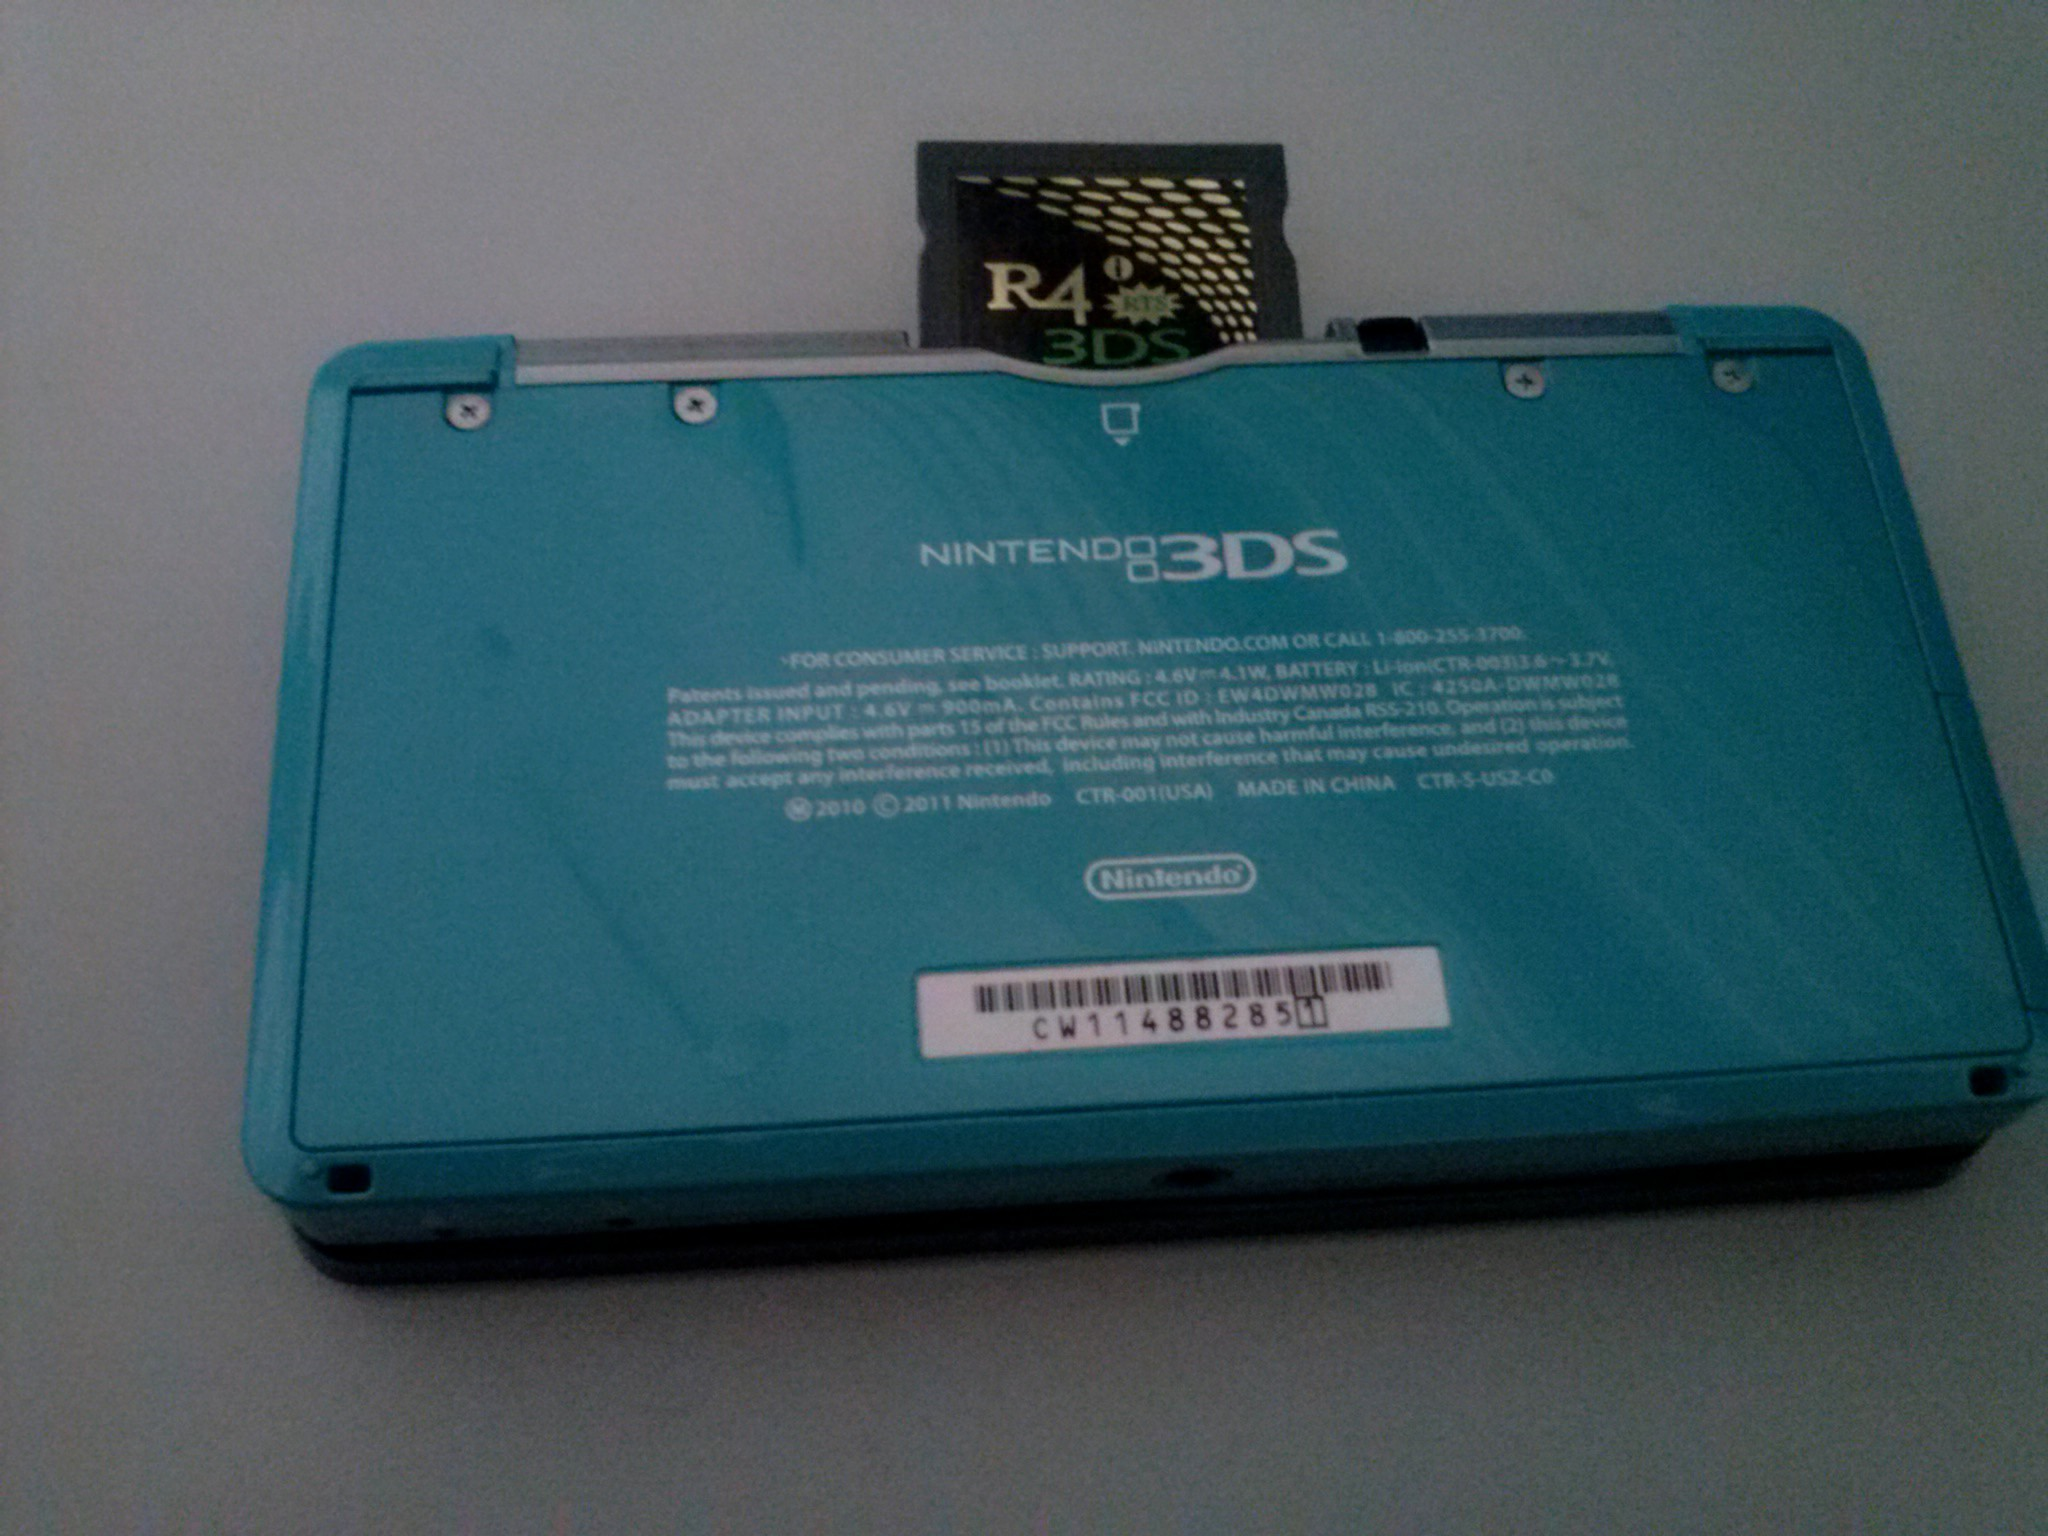 The first time use, how to setup R4/R4i 3ds card for 3DS or 3DS XL console  with 10.6.0-31U/E/J?